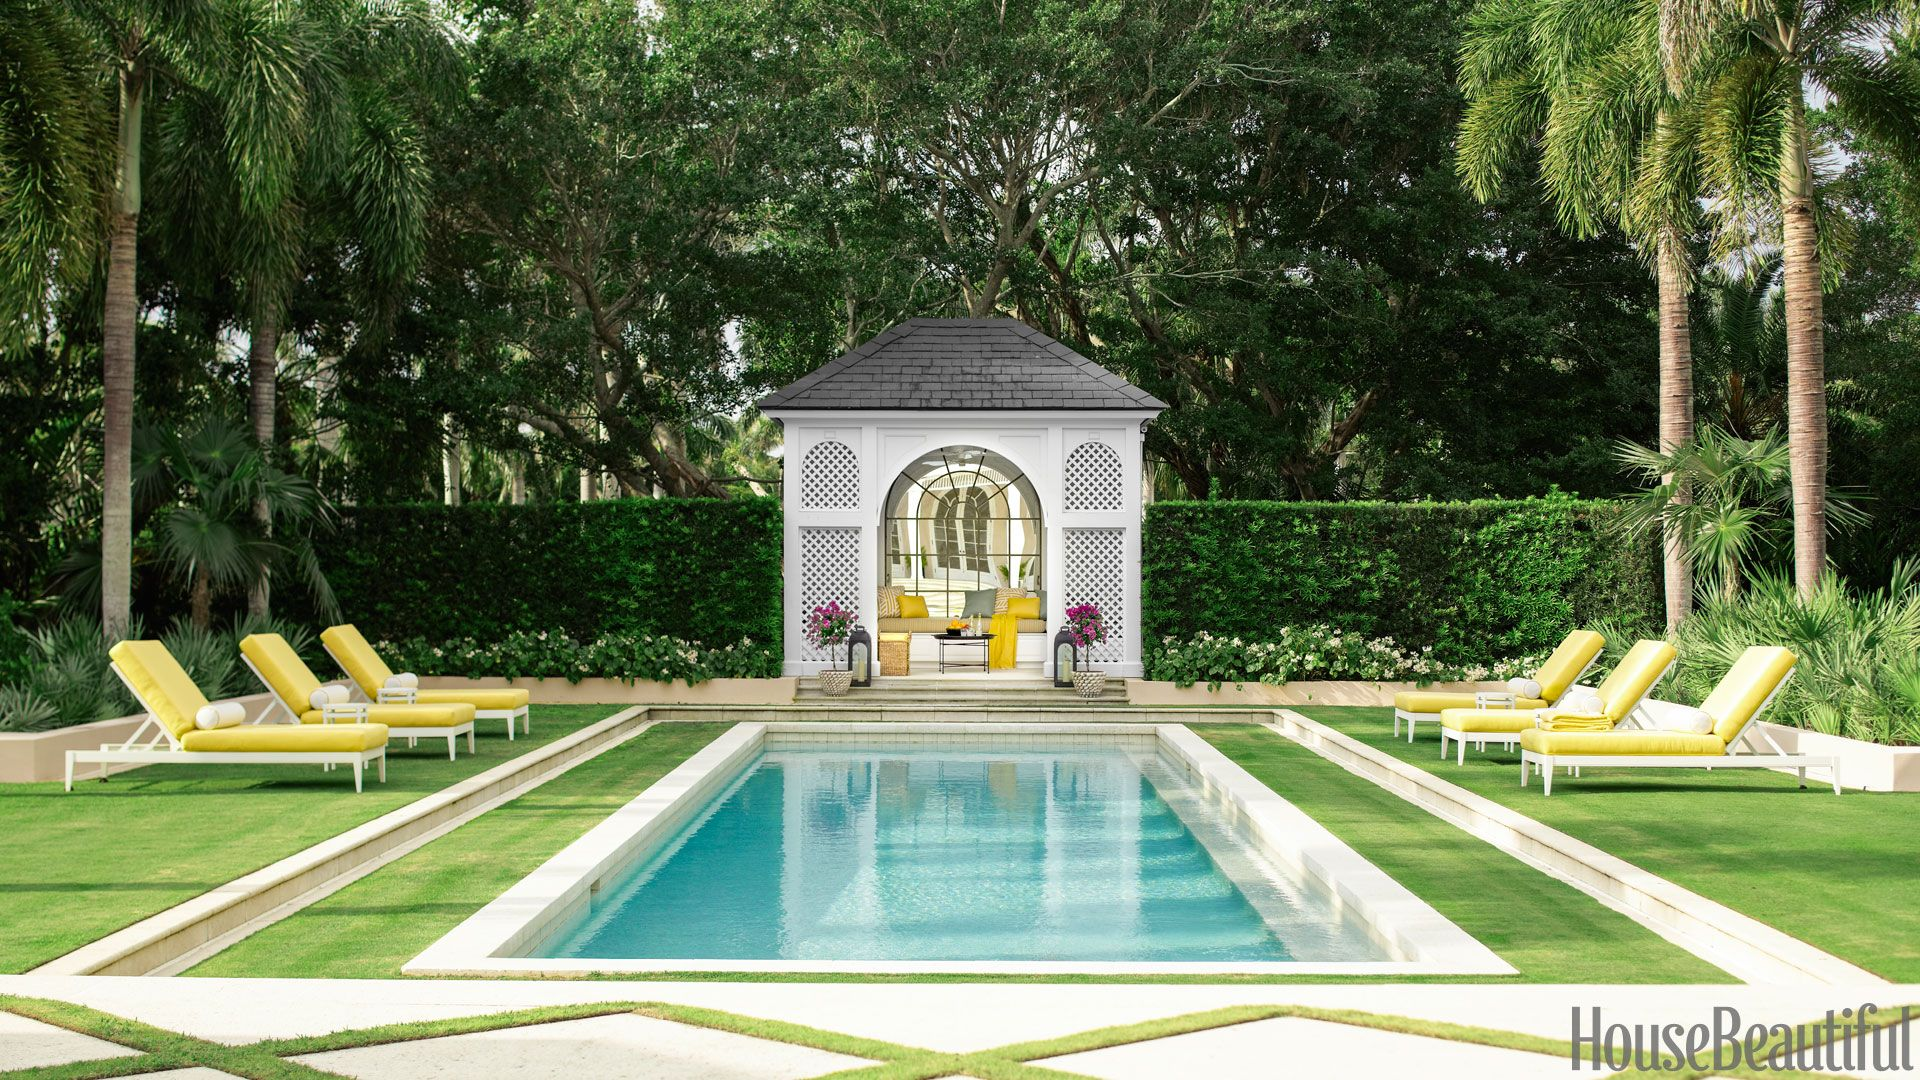 34 Swimming Pools Youll Want to Lounge In ASAP